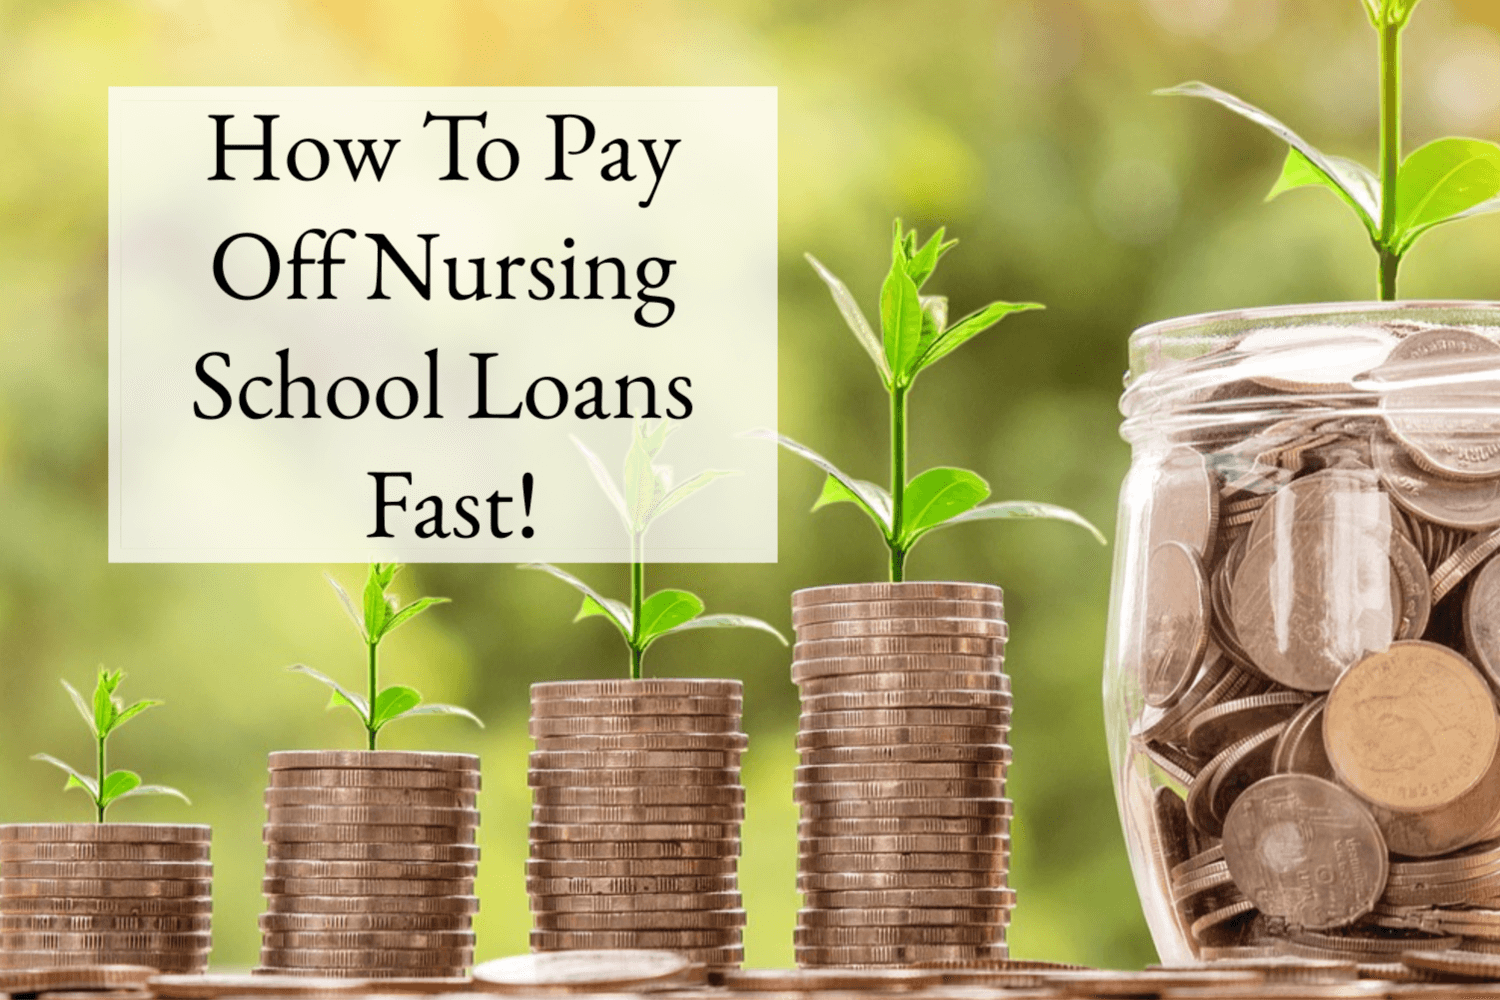 Nurse Money: How To Pay Off Nursing School Loans Fast